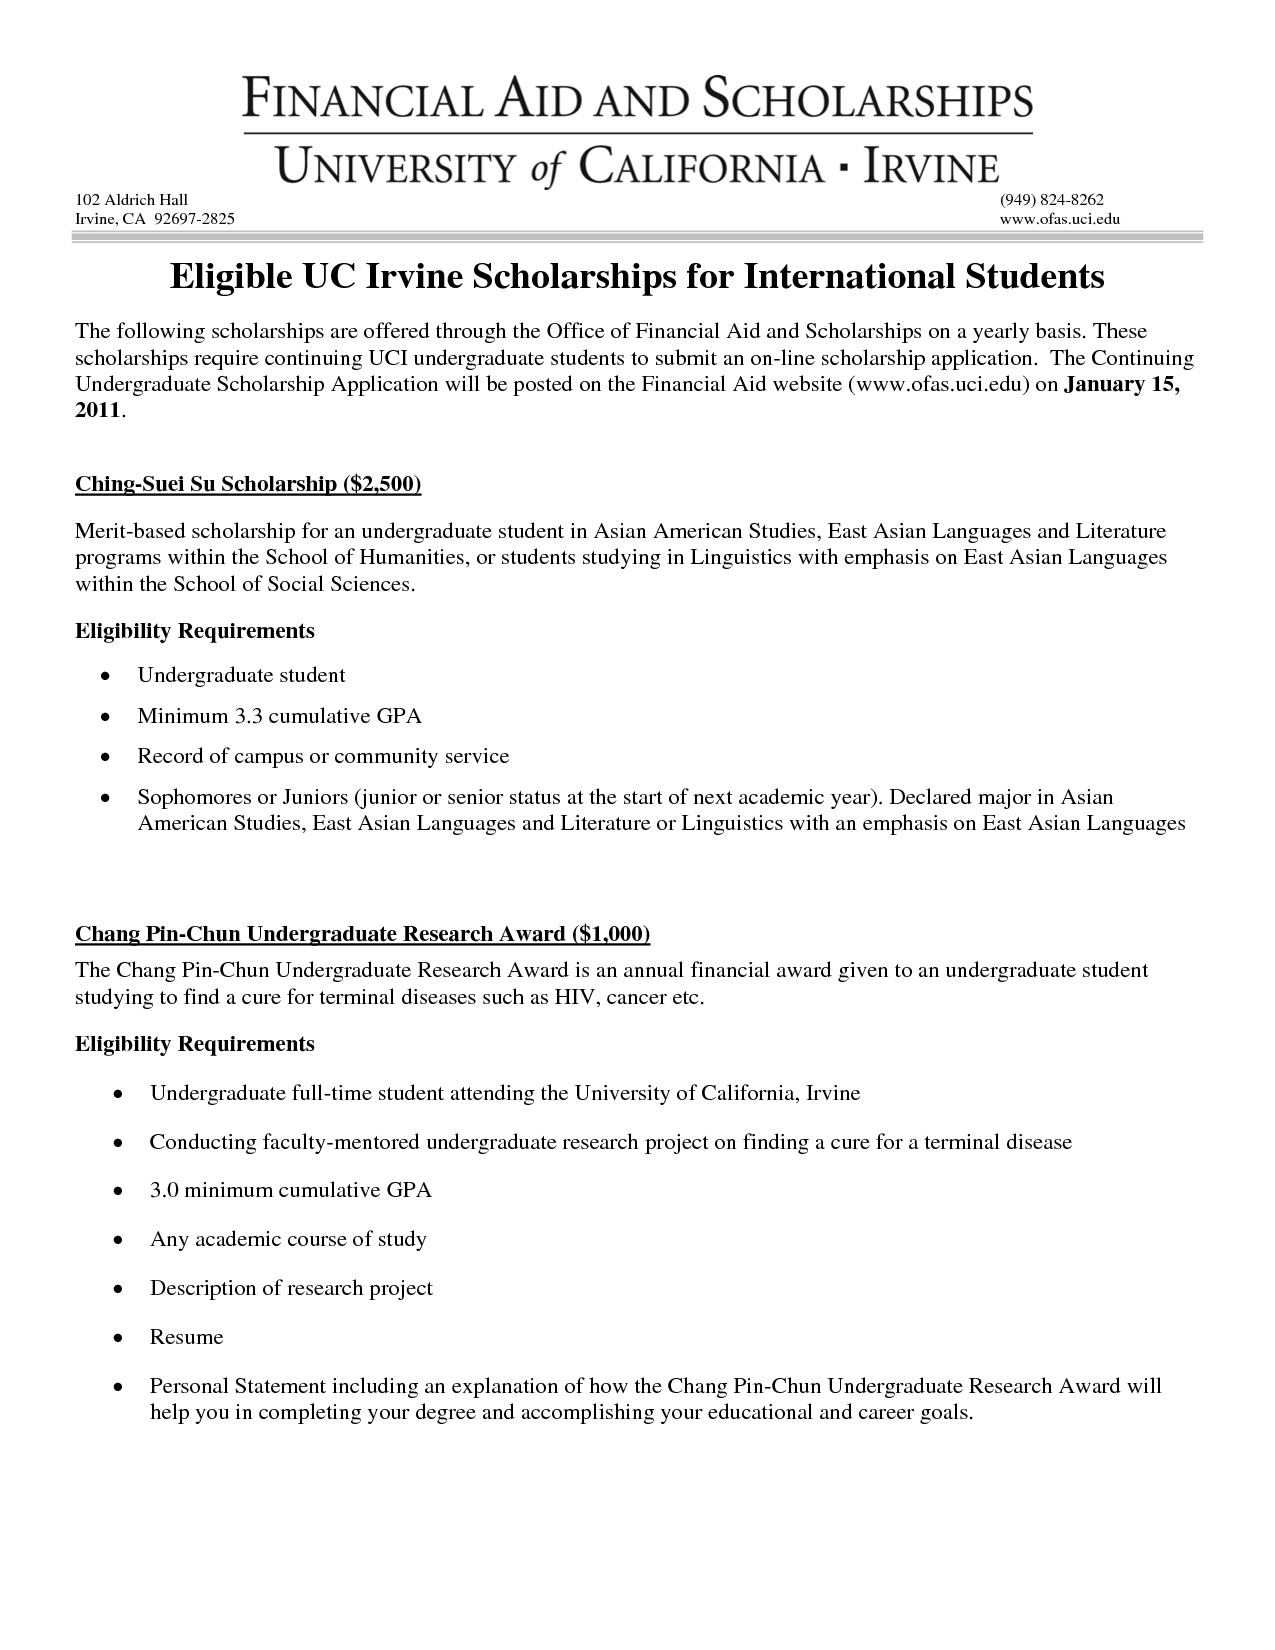 Example Resume For Scholarship Application Financial Need Scholarship Letter Examples Scholarship